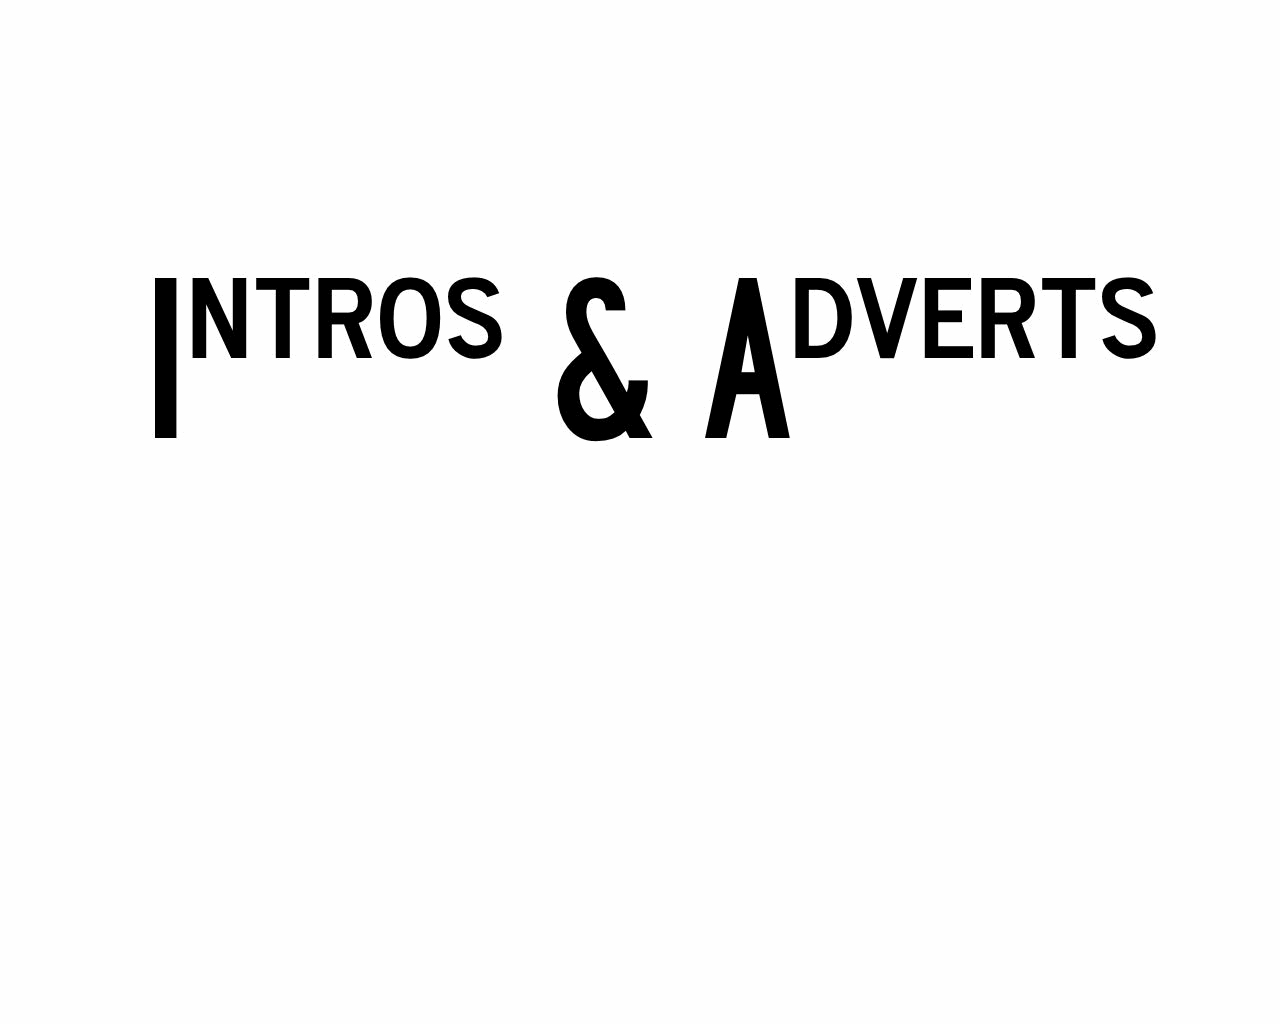 Intros & Adverts